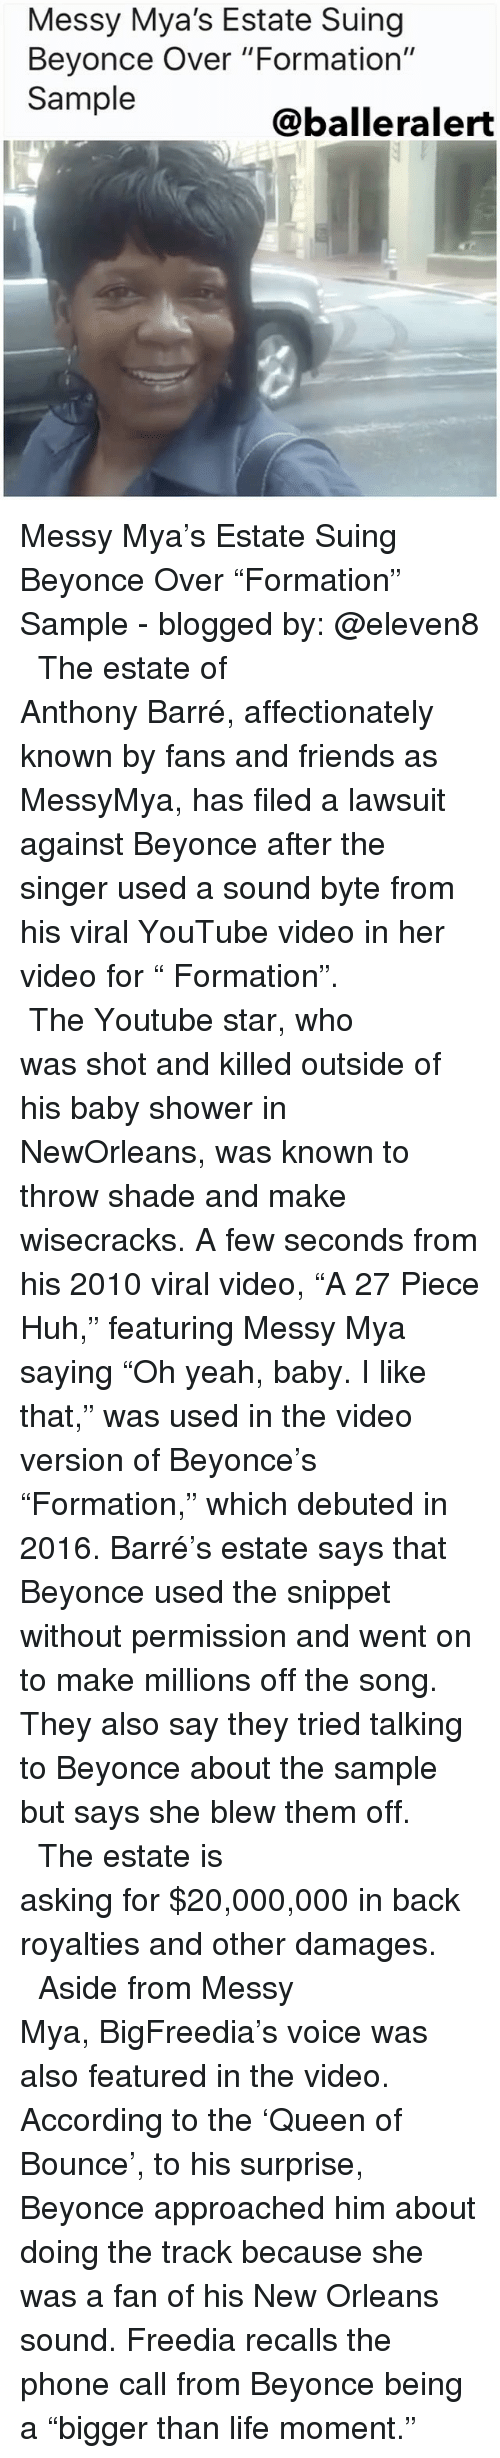 """Youtube Star: Messy Mya's Estate Suing  Beyonce Over """"Formation""""  Sample  Caballe ralert Messy Mya's Estate Suing Beyonce Over """"Formation"""" Sample - blogged by: @eleven8 ⠀⠀⠀⠀⠀⠀⠀⠀⠀ ⠀⠀⠀⠀⠀⠀⠀⠀⠀ The estate of Anthony Barré, affectionately known by fans and friends as MessyMya, has filed a lawsuit against Beyonce after the singer used a sound byte from his viral YouTube video in her video for """" Formation"""". ⠀⠀⠀⠀⠀⠀⠀⠀⠀ ⠀⠀⠀⠀⠀⠀⠀⠀⠀ The Youtube star, who was shot and killed outside of his baby shower in NewOrleans, was known to throw shade and make wisecracks. A few seconds from his 2010 viral video, """"A 27 Piece Huh,"""" featuring Messy Mya saying """"Oh yeah, baby. I like that,"""" was used in the video version of Beyonce's """"Formation,"""" which debuted in 2016. Barré's estate says that Beyonce used the snippet without permission and went on to make millions off the song. They also say they tried talking to Beyonce about the sample but says she blew them off. ⠀⠀⠀⠀⠀⠀⠀⠀⠀ ⠀⠀⠀⠀⠀⠀⠀⠀⠀ The estate is asking for $20,000,000 in back royalties and other damages. ⠀⠀⠀⠀⠀⠀⠀⠀⠀ ⠀⠀⠀⠀⠀⠀⠀⠀⠀ Aside from Messy Mya, BigFreedia's voice was also featured in the video. According to the 'Queen of Bounce', to his surprise, Beyonce approached him about doing the track because she was a fan of his New Orleans sound. Freedia recalls the phone call from Beyonce being a """"bigger than life moment."""""""